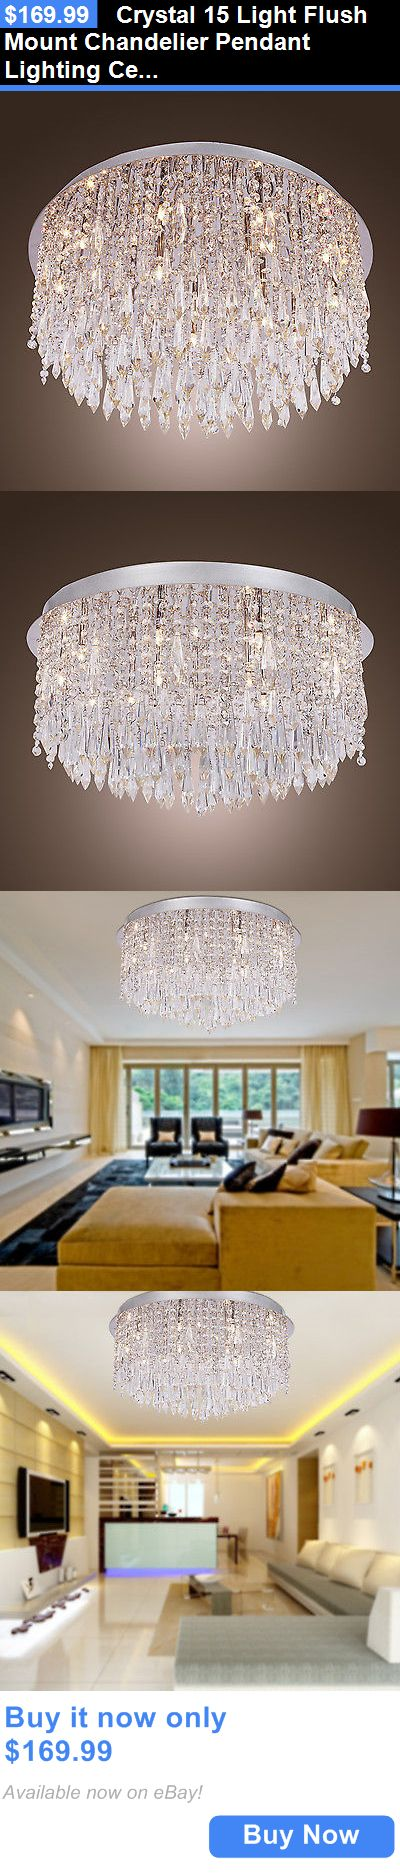 Lamps And Lighting: Crystal 15 Light Flush Mount Chandelier Pendant Lighting Ceiling Fixture Lamp BUY IT NOW ONLY: $169.99